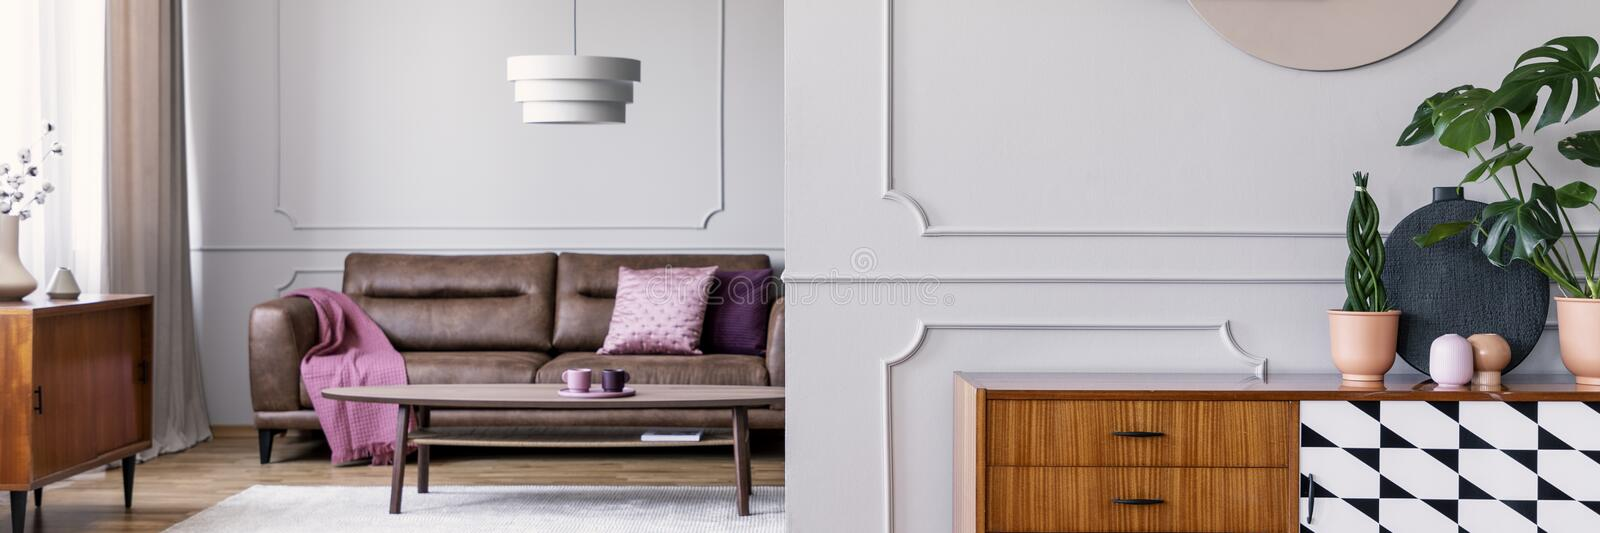 Plants on wooden cabinet in grey living room interior with pink blanket on leather couch. Real photo. Concept royalty free stock photos